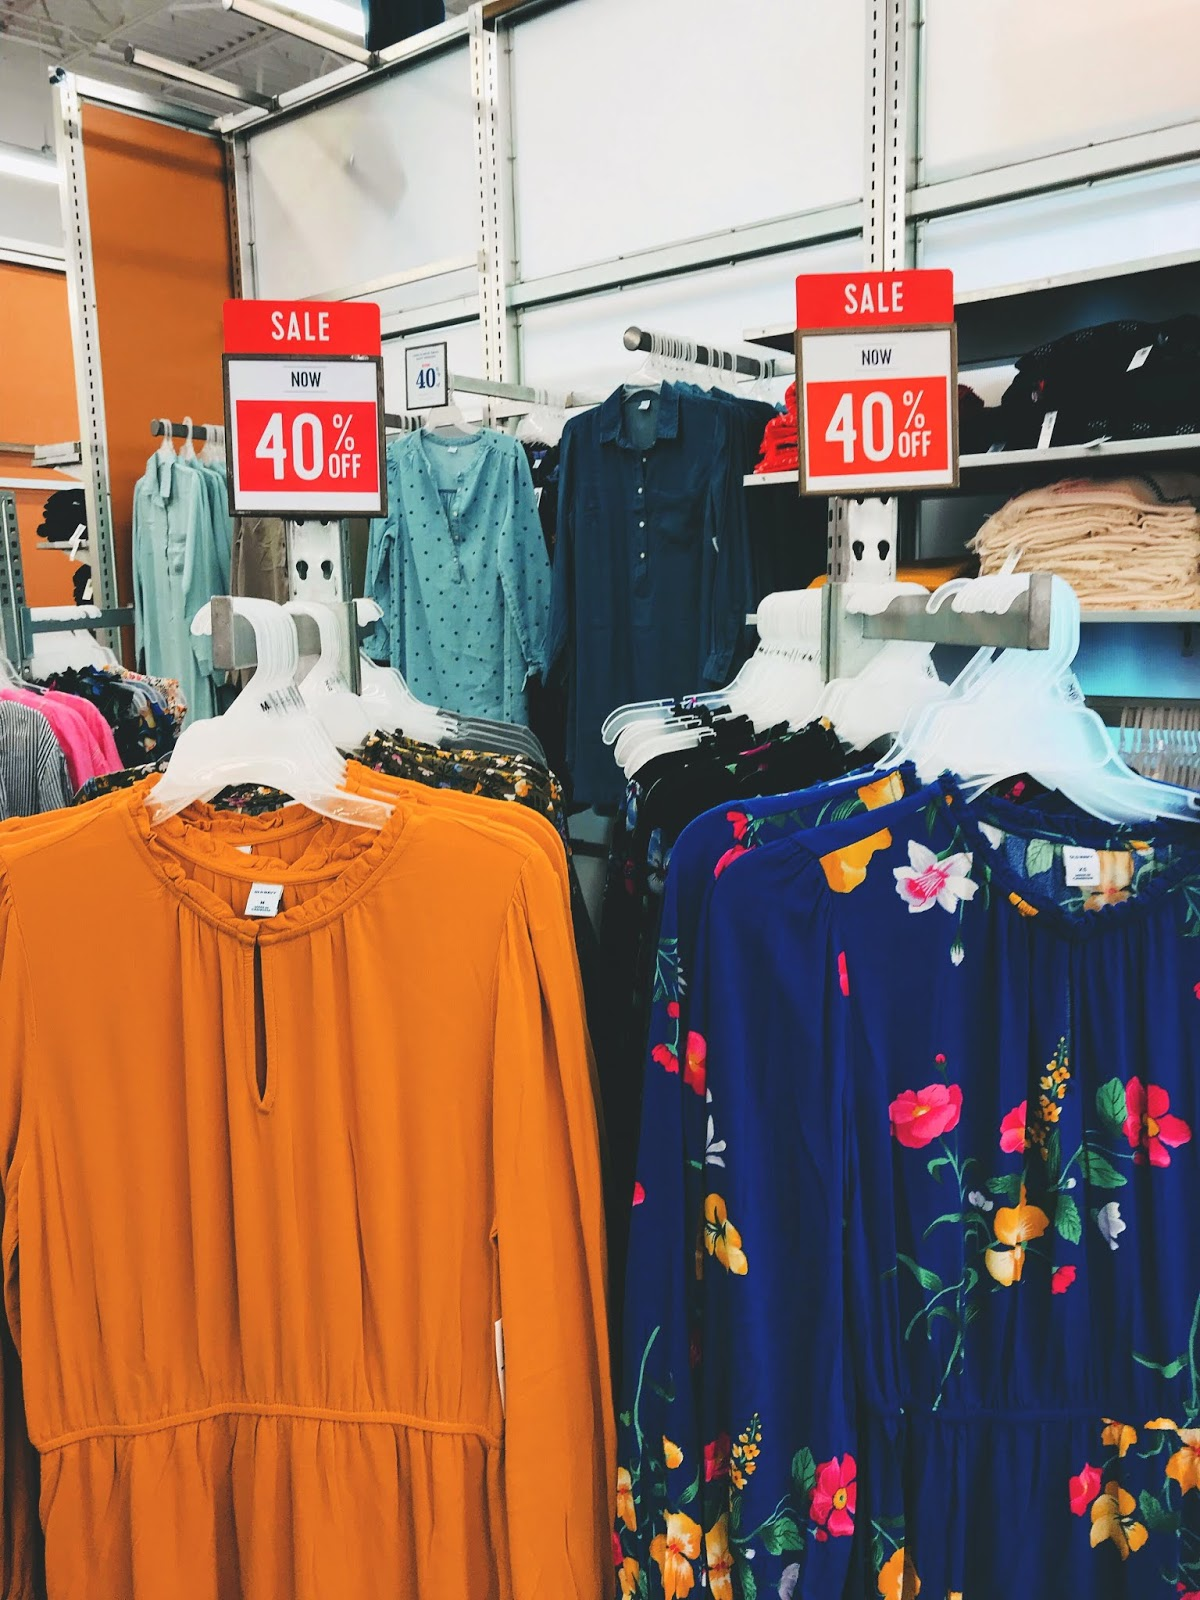 Shopping In City: Looking For Cute Summer Things + Why Are They Selling Long Sleeves?